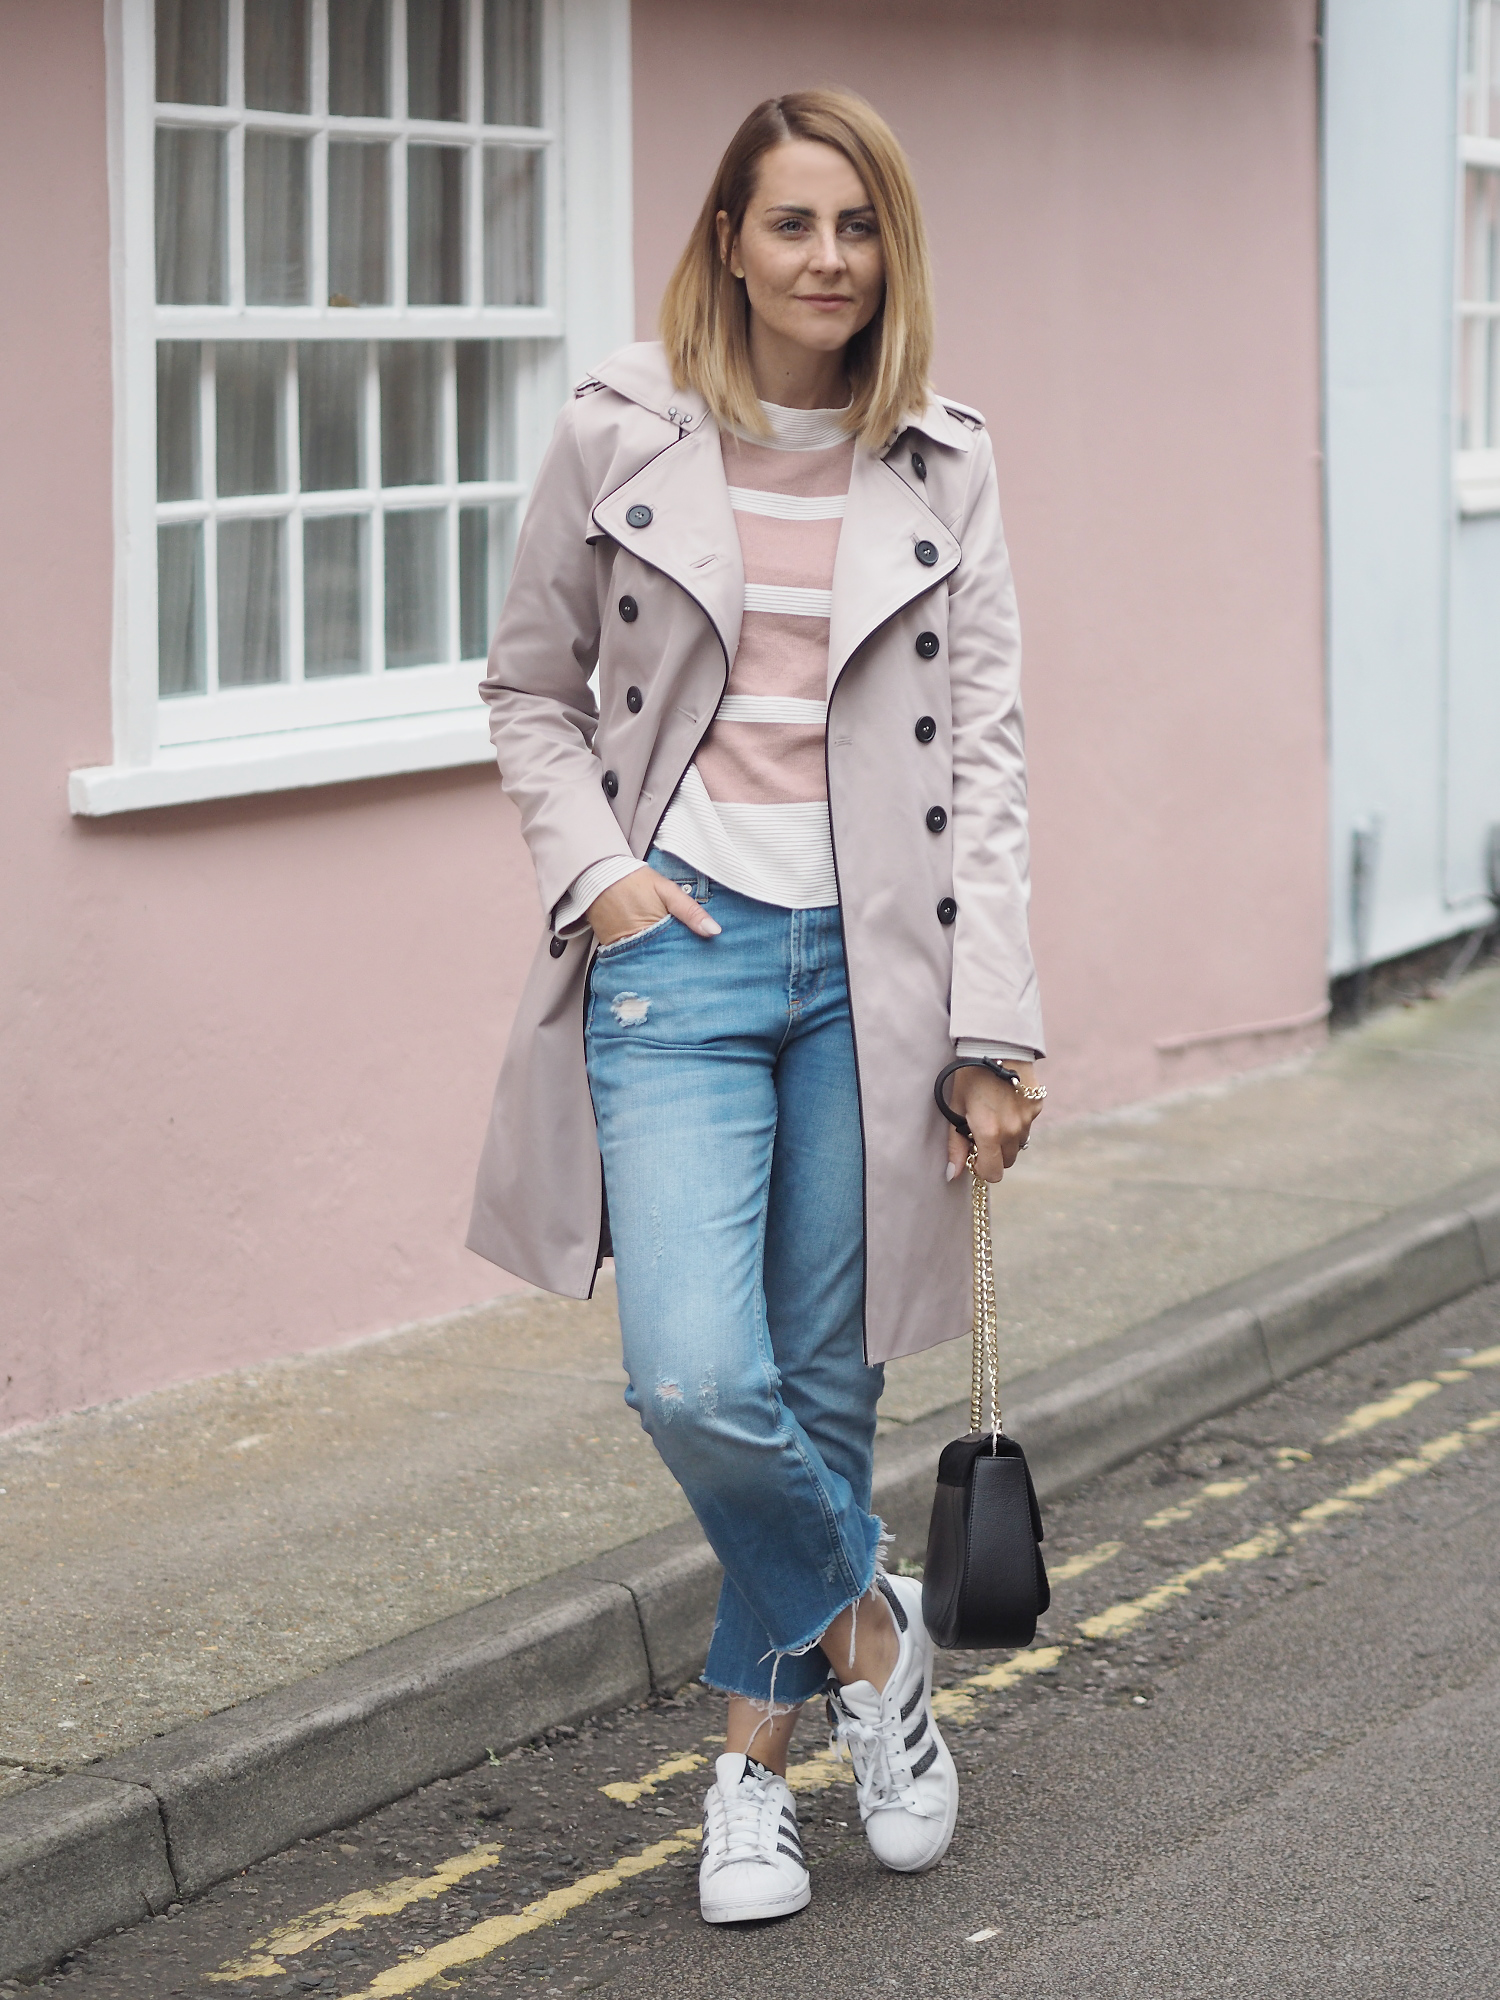 Jacques vert mac outfit scasual look with jeans